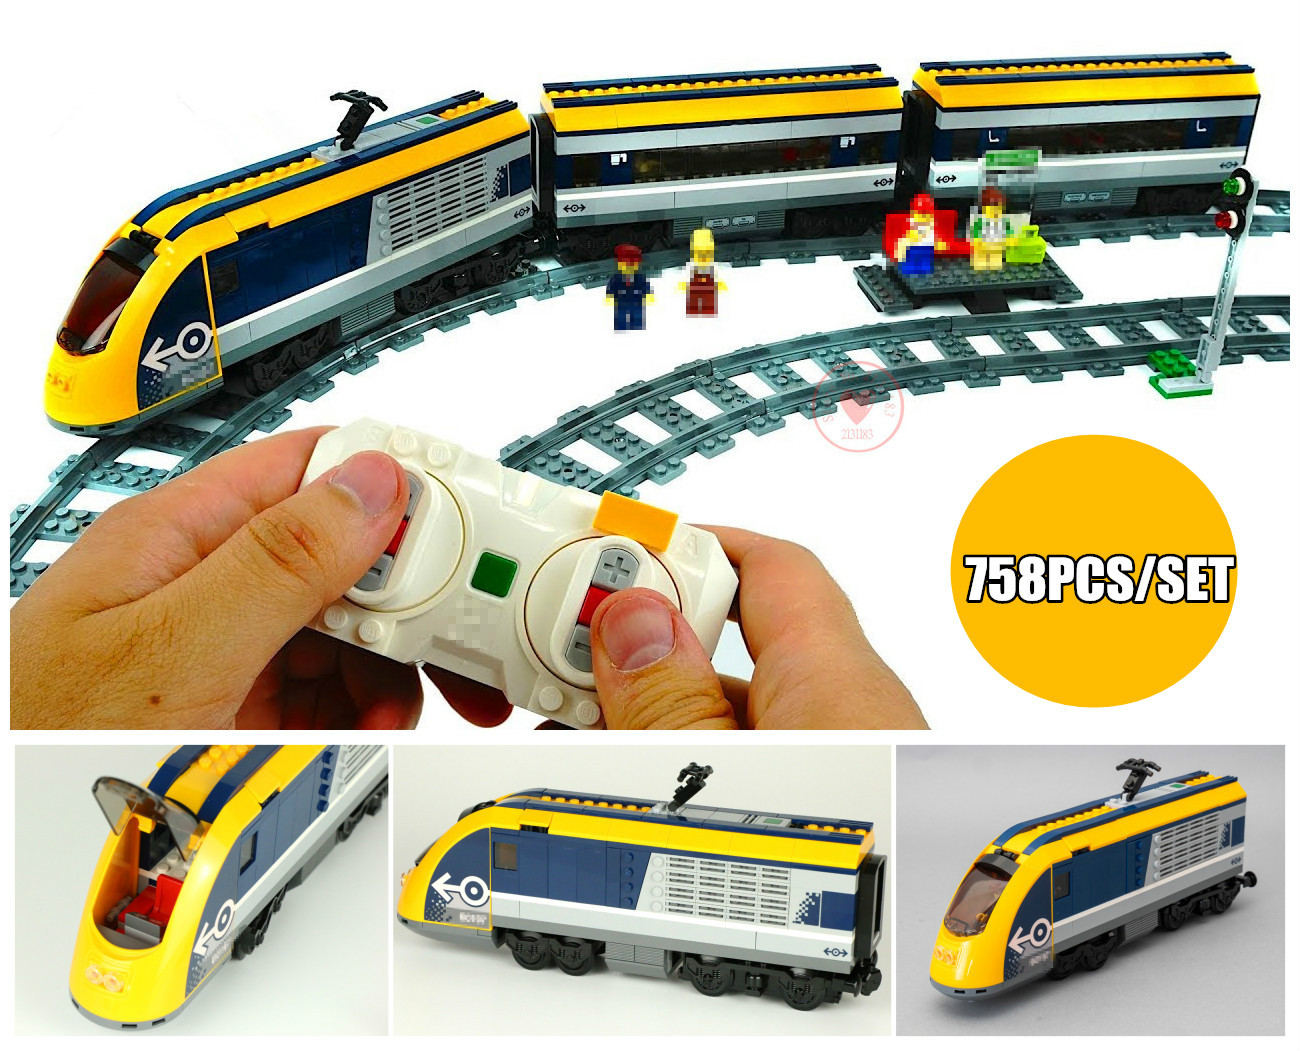 New City RC car Passenger Train station Sets fit legoings technic city figures Model Building Blocks Bricks Toy Gift 60197 kid 407pcs sets city police station building blocks bricks educational boys diy toys birthday brinquedos christmas gift toy